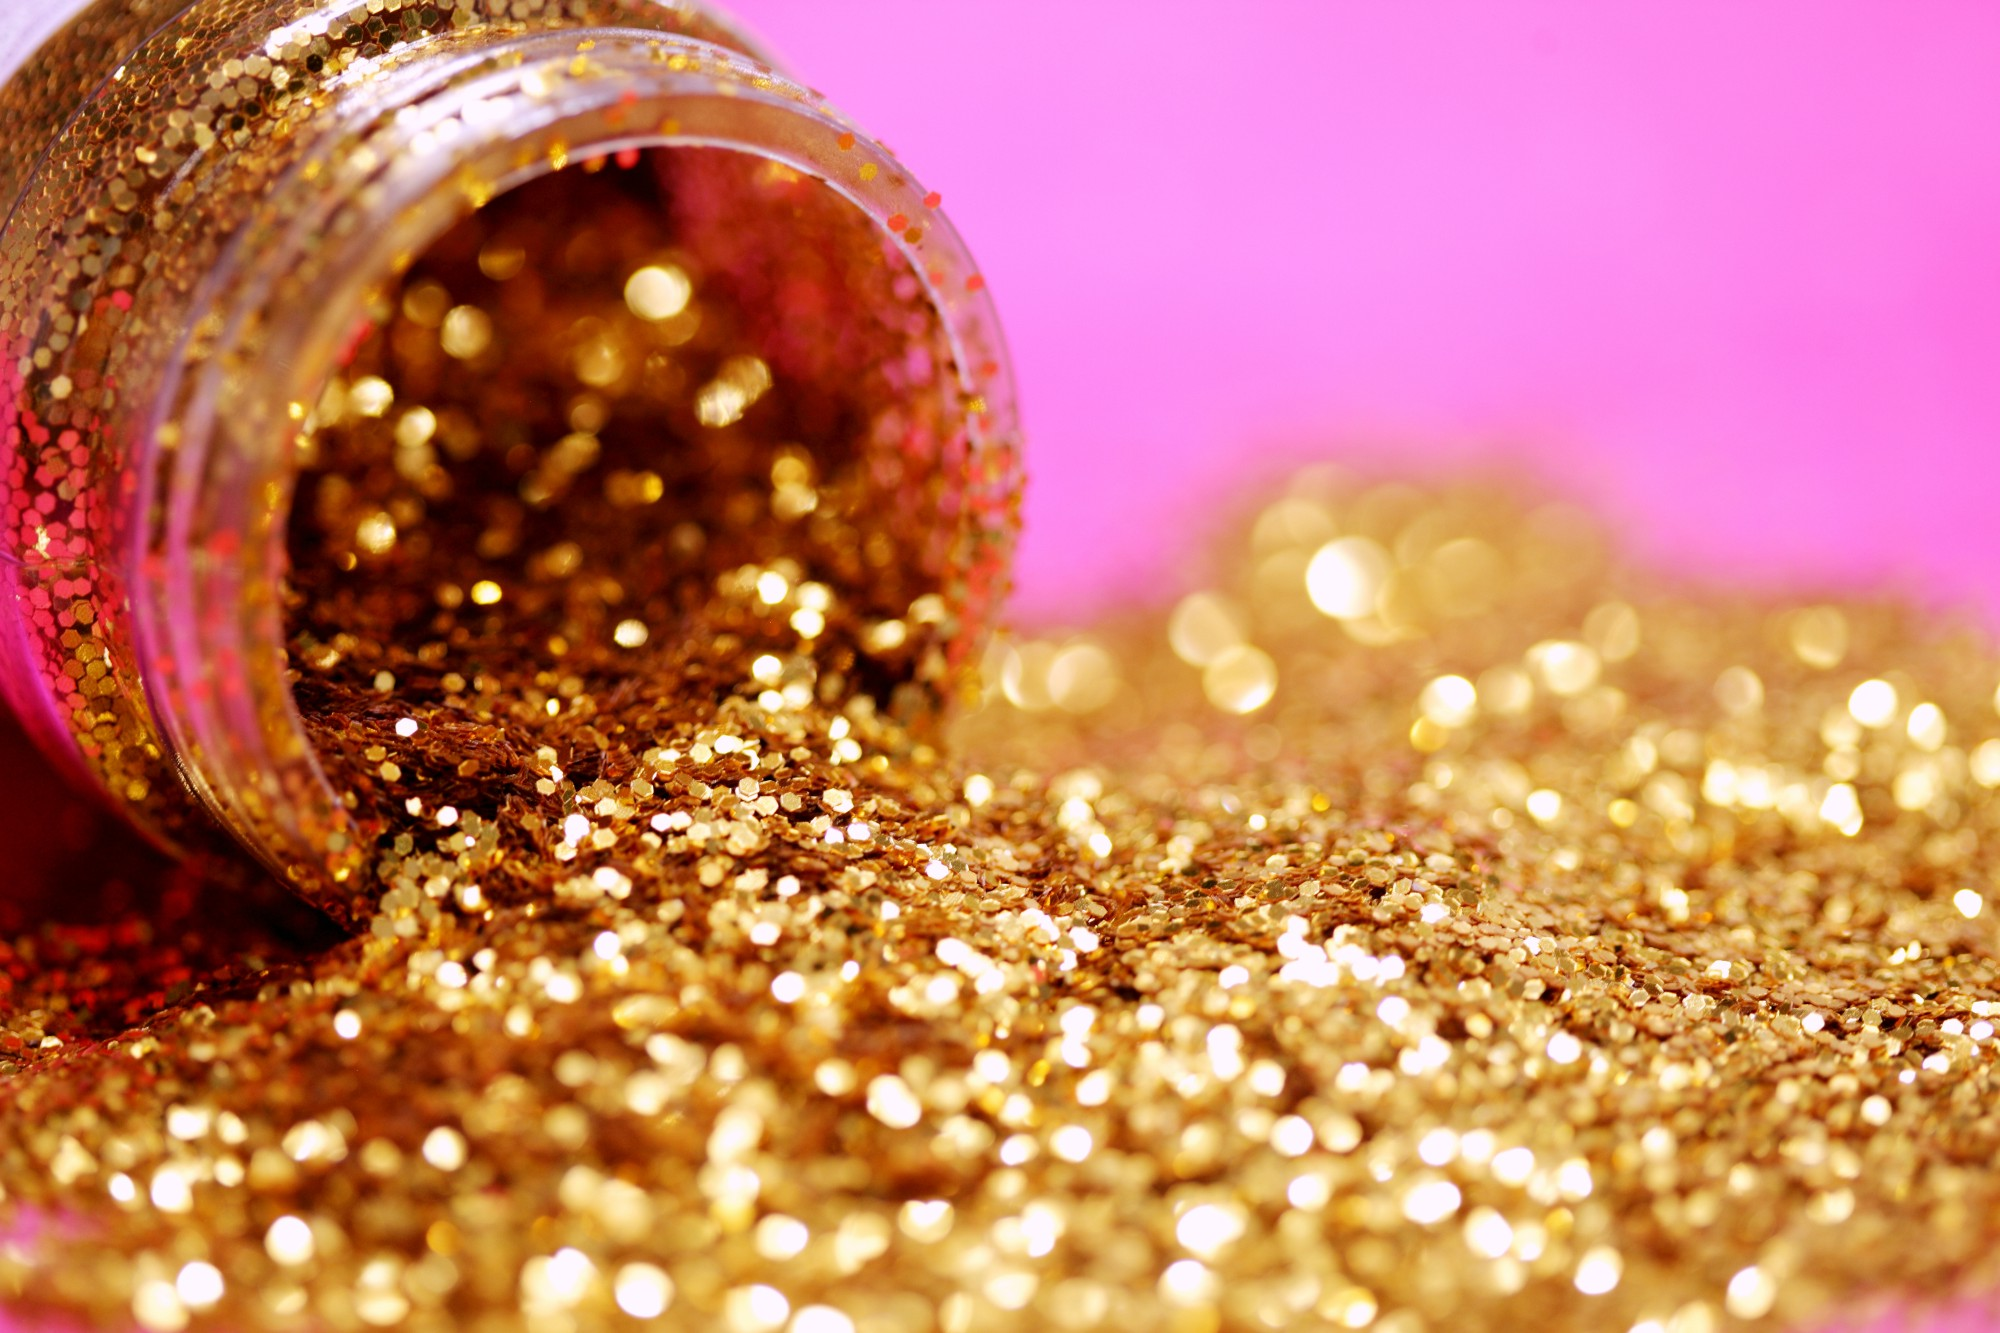 how to buy gold, how to invest in gold, where to buy gold, buy gold bars, where to buy gold bars, investing in gold, gold